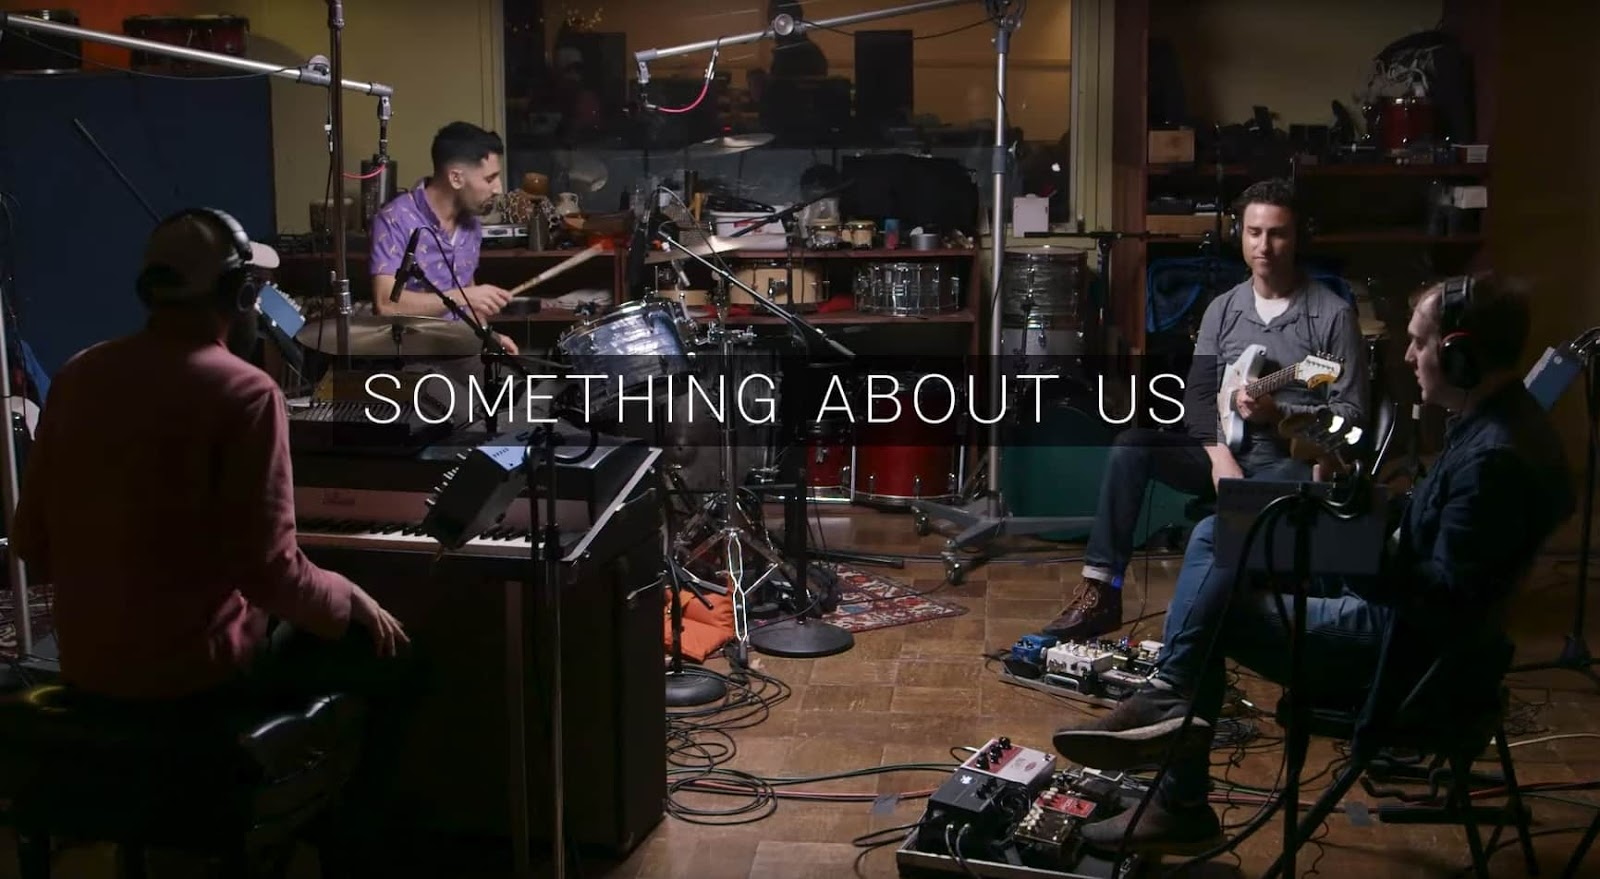 Ein fantastischer Coversong von Daft Punks 'Something About Us' von Pomplamoose | SOTD